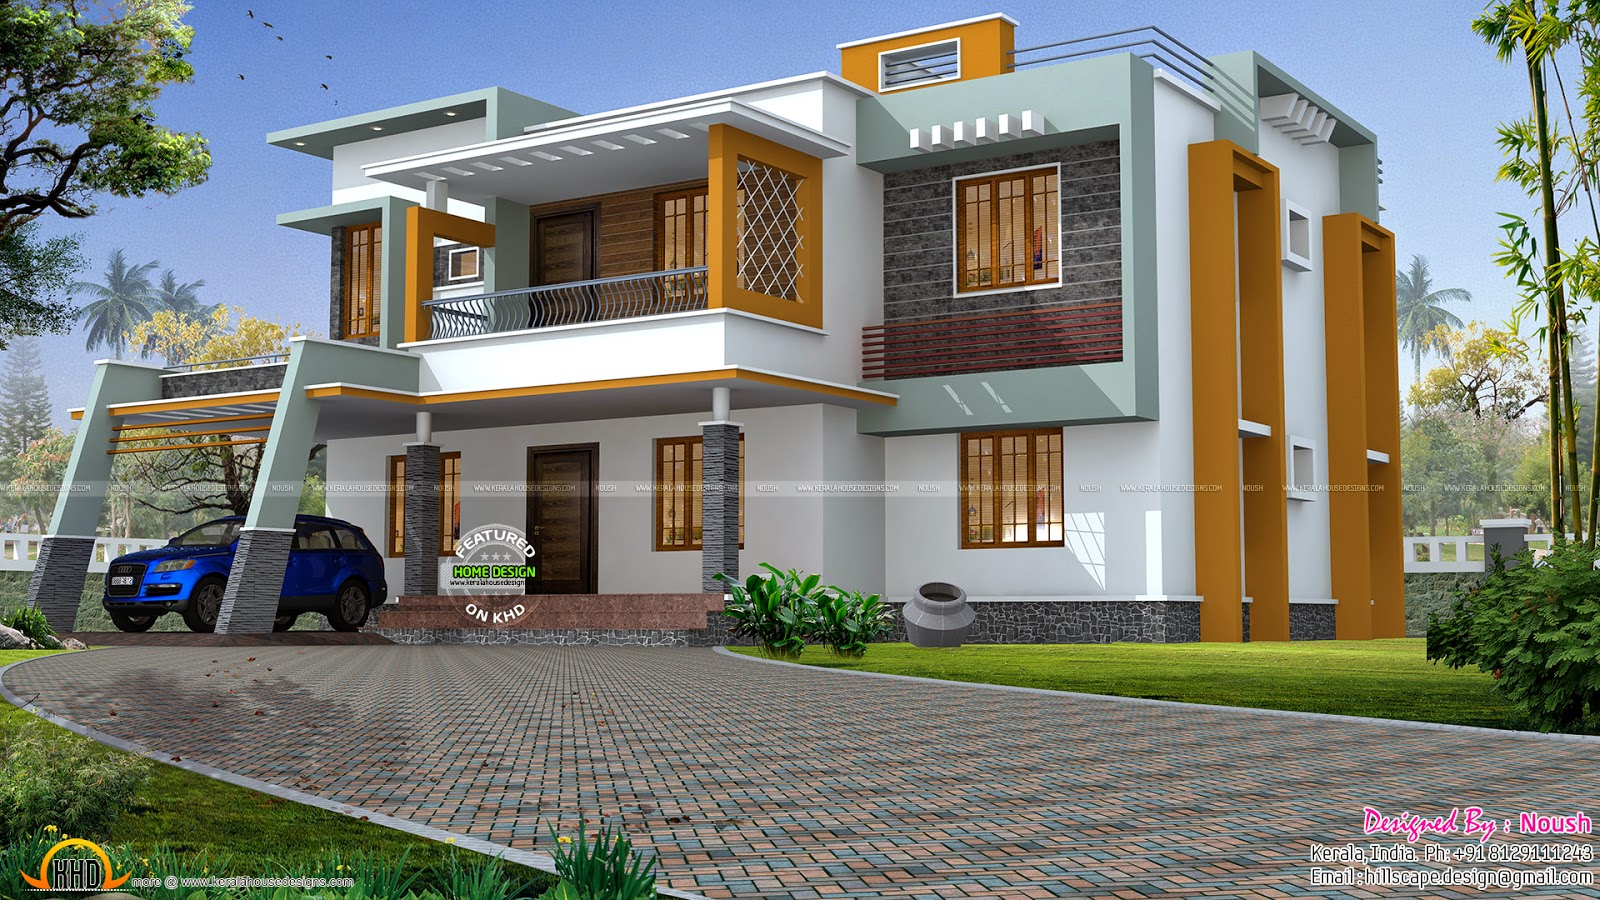 Box style house kerala home design and floor plans for Modern box type house design